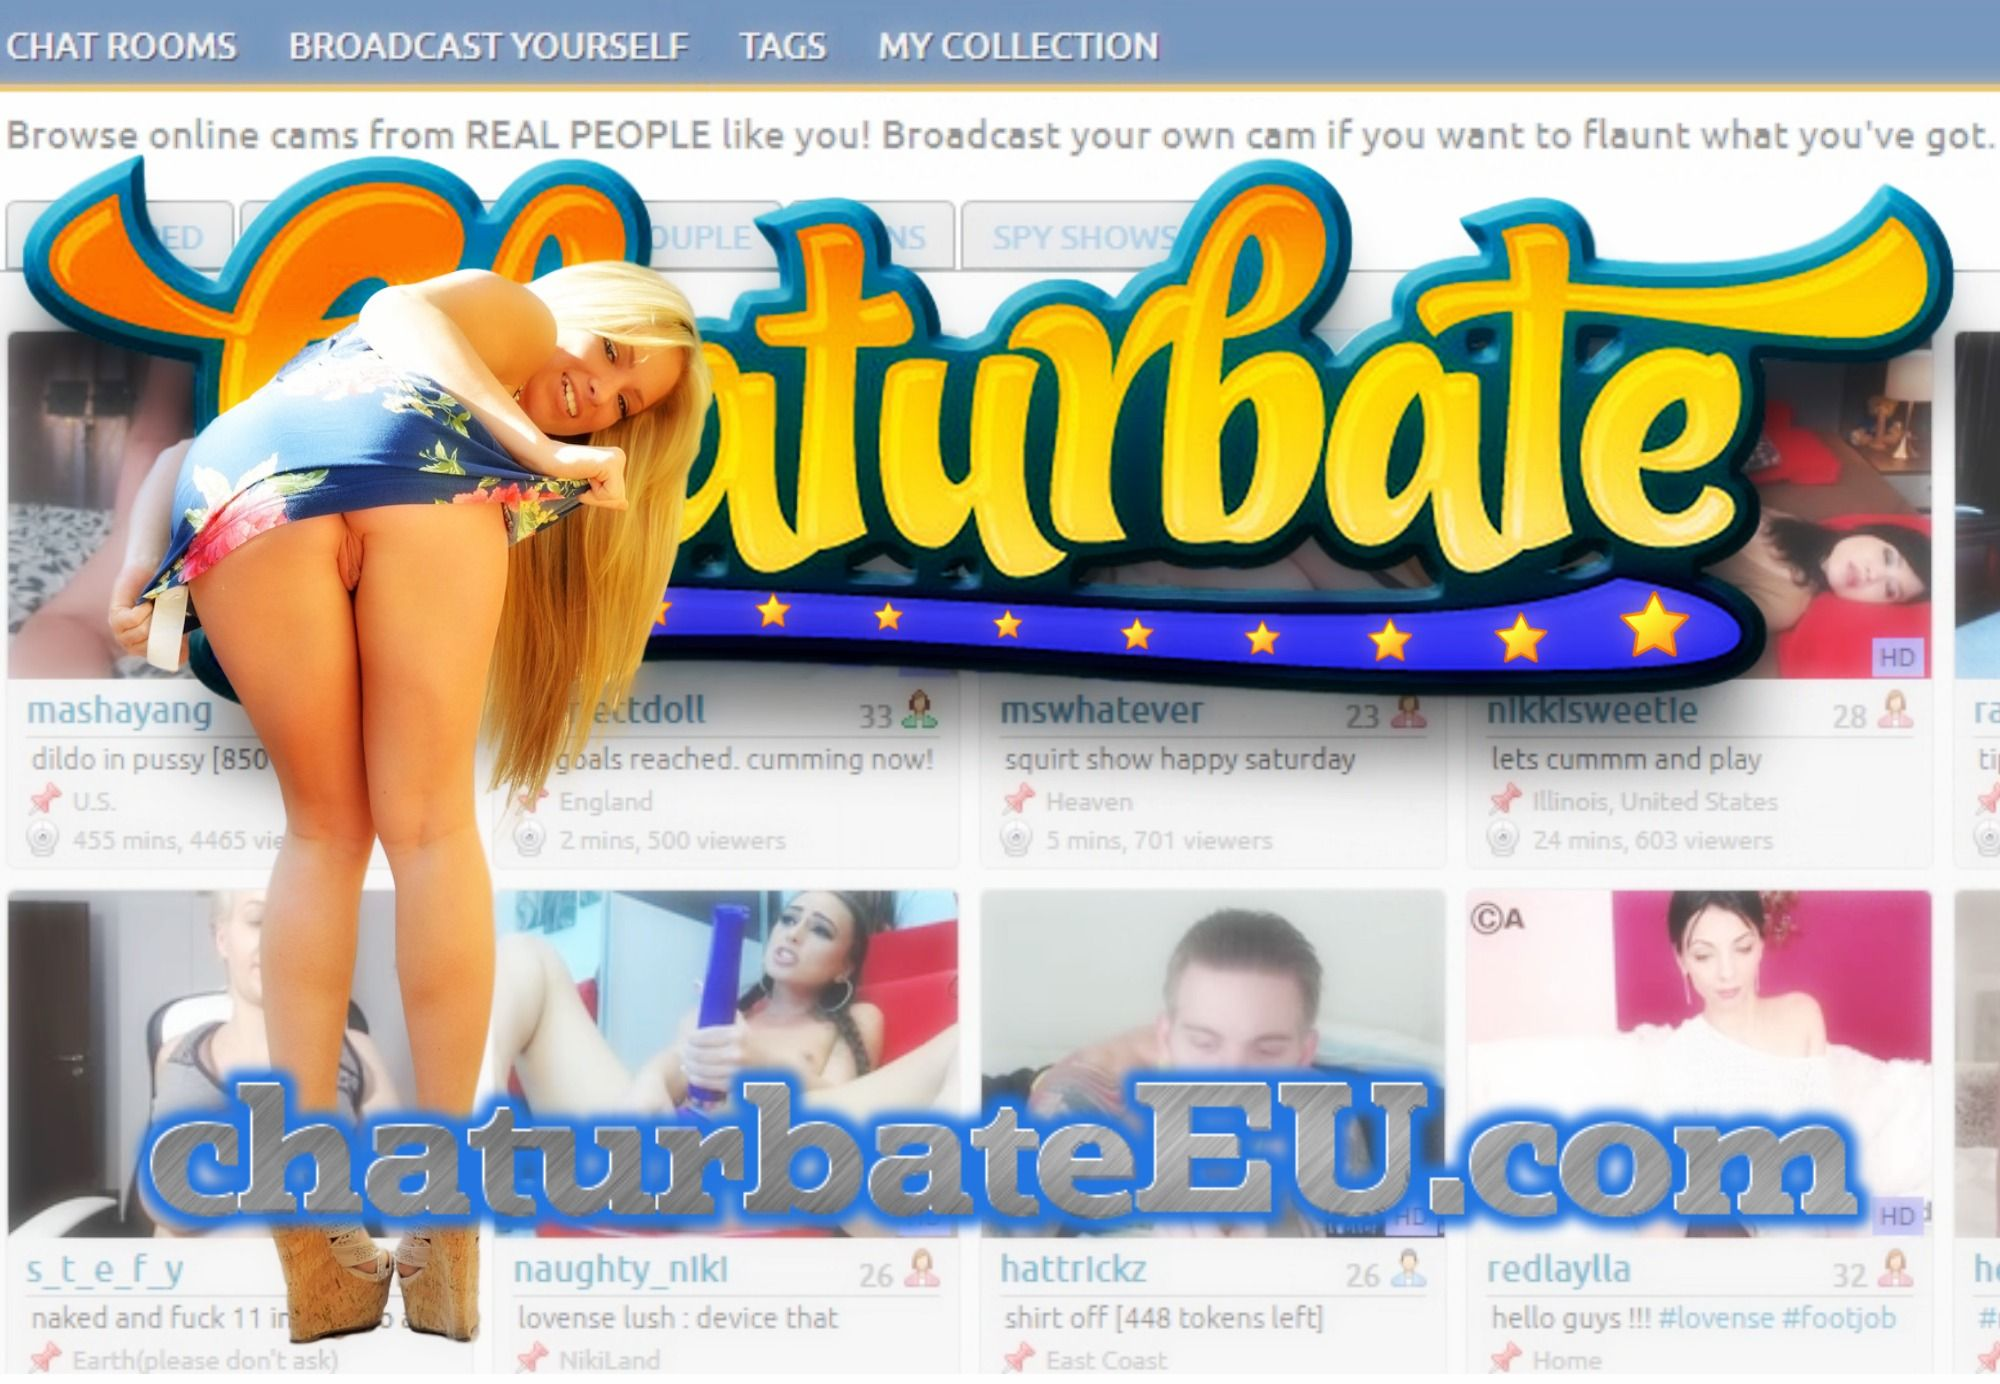 RT @chaturbateEU: Thousands of Live Amateurs Broadcasting from Home!Signup at: https://t.co/stiJgw9PpK #dutchyteam #chaturbate #NSFW https:…